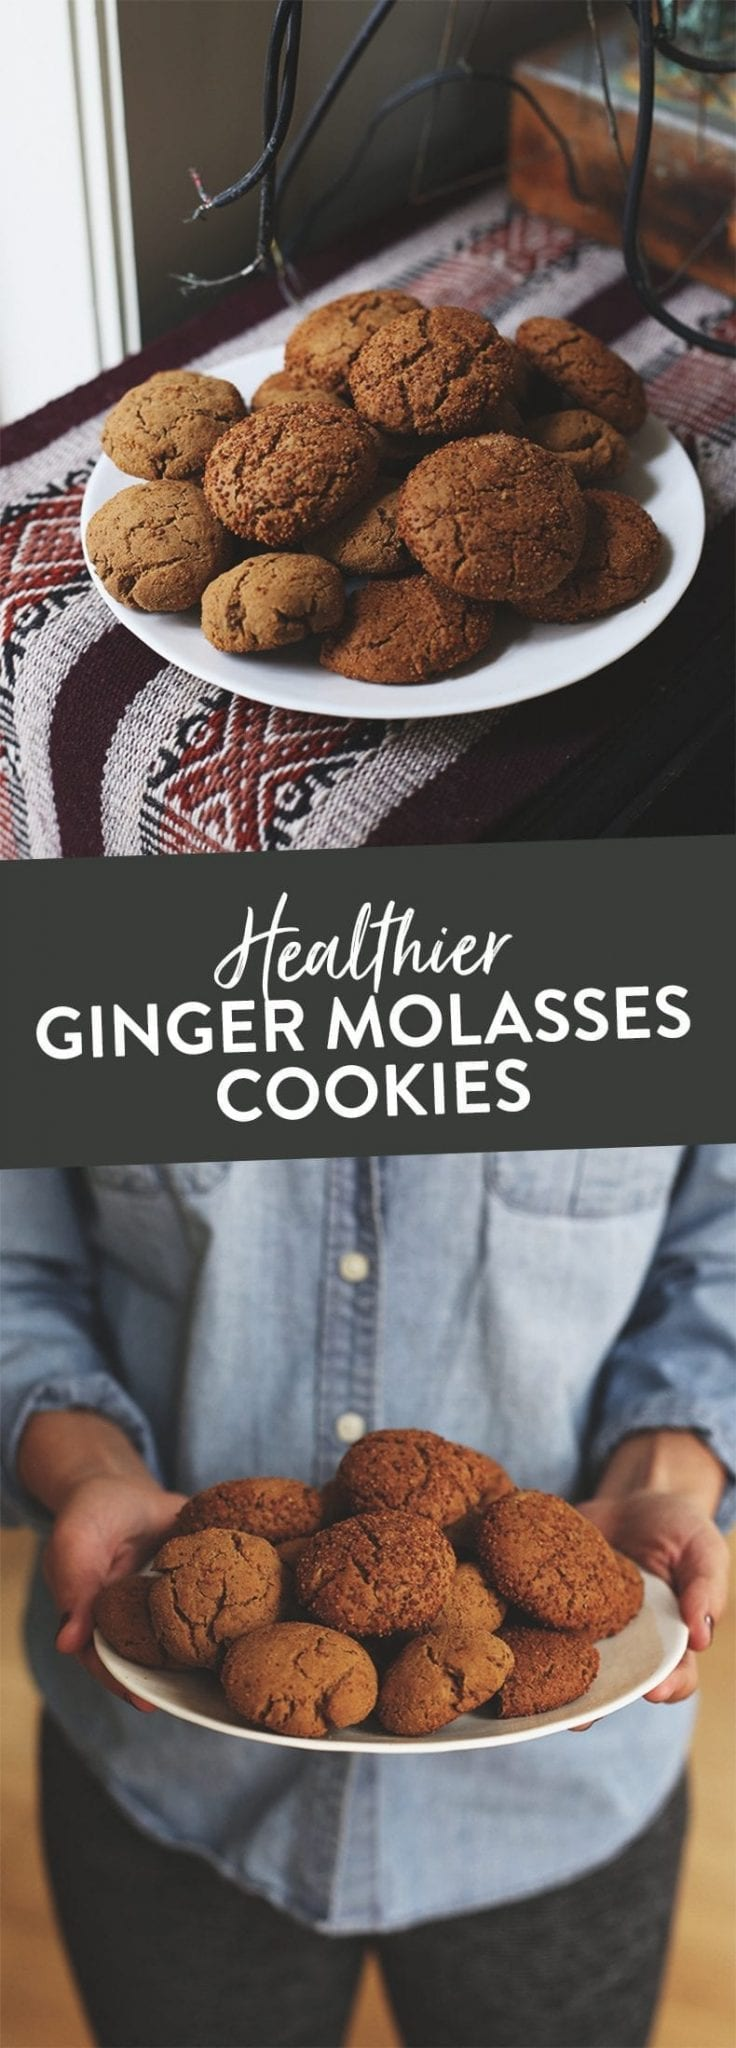 A recipe for healthier ginger molasses cookies, made with unrefined coconut sugar, light on the butter and a zesty spice mix. Sub gluten-free flour for a gluten-free alternative or keep regular for an equally delicious cookie recipe.